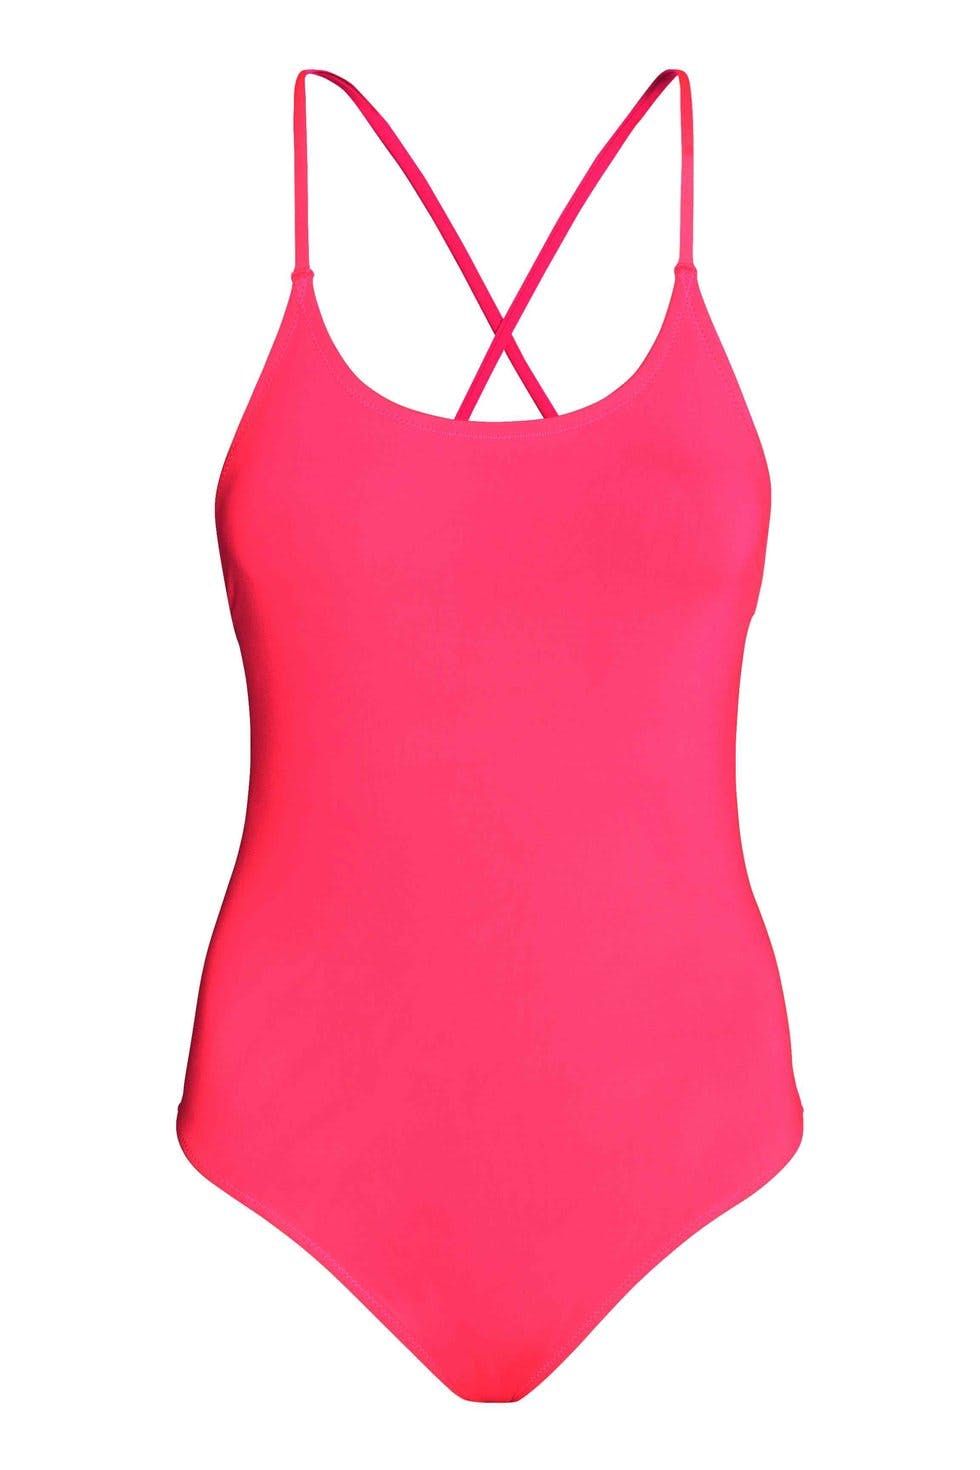 e7b9cef849 Keep it simple in this straightforward one-piece. Traditional cut, but an  eye-popping shade of pink.